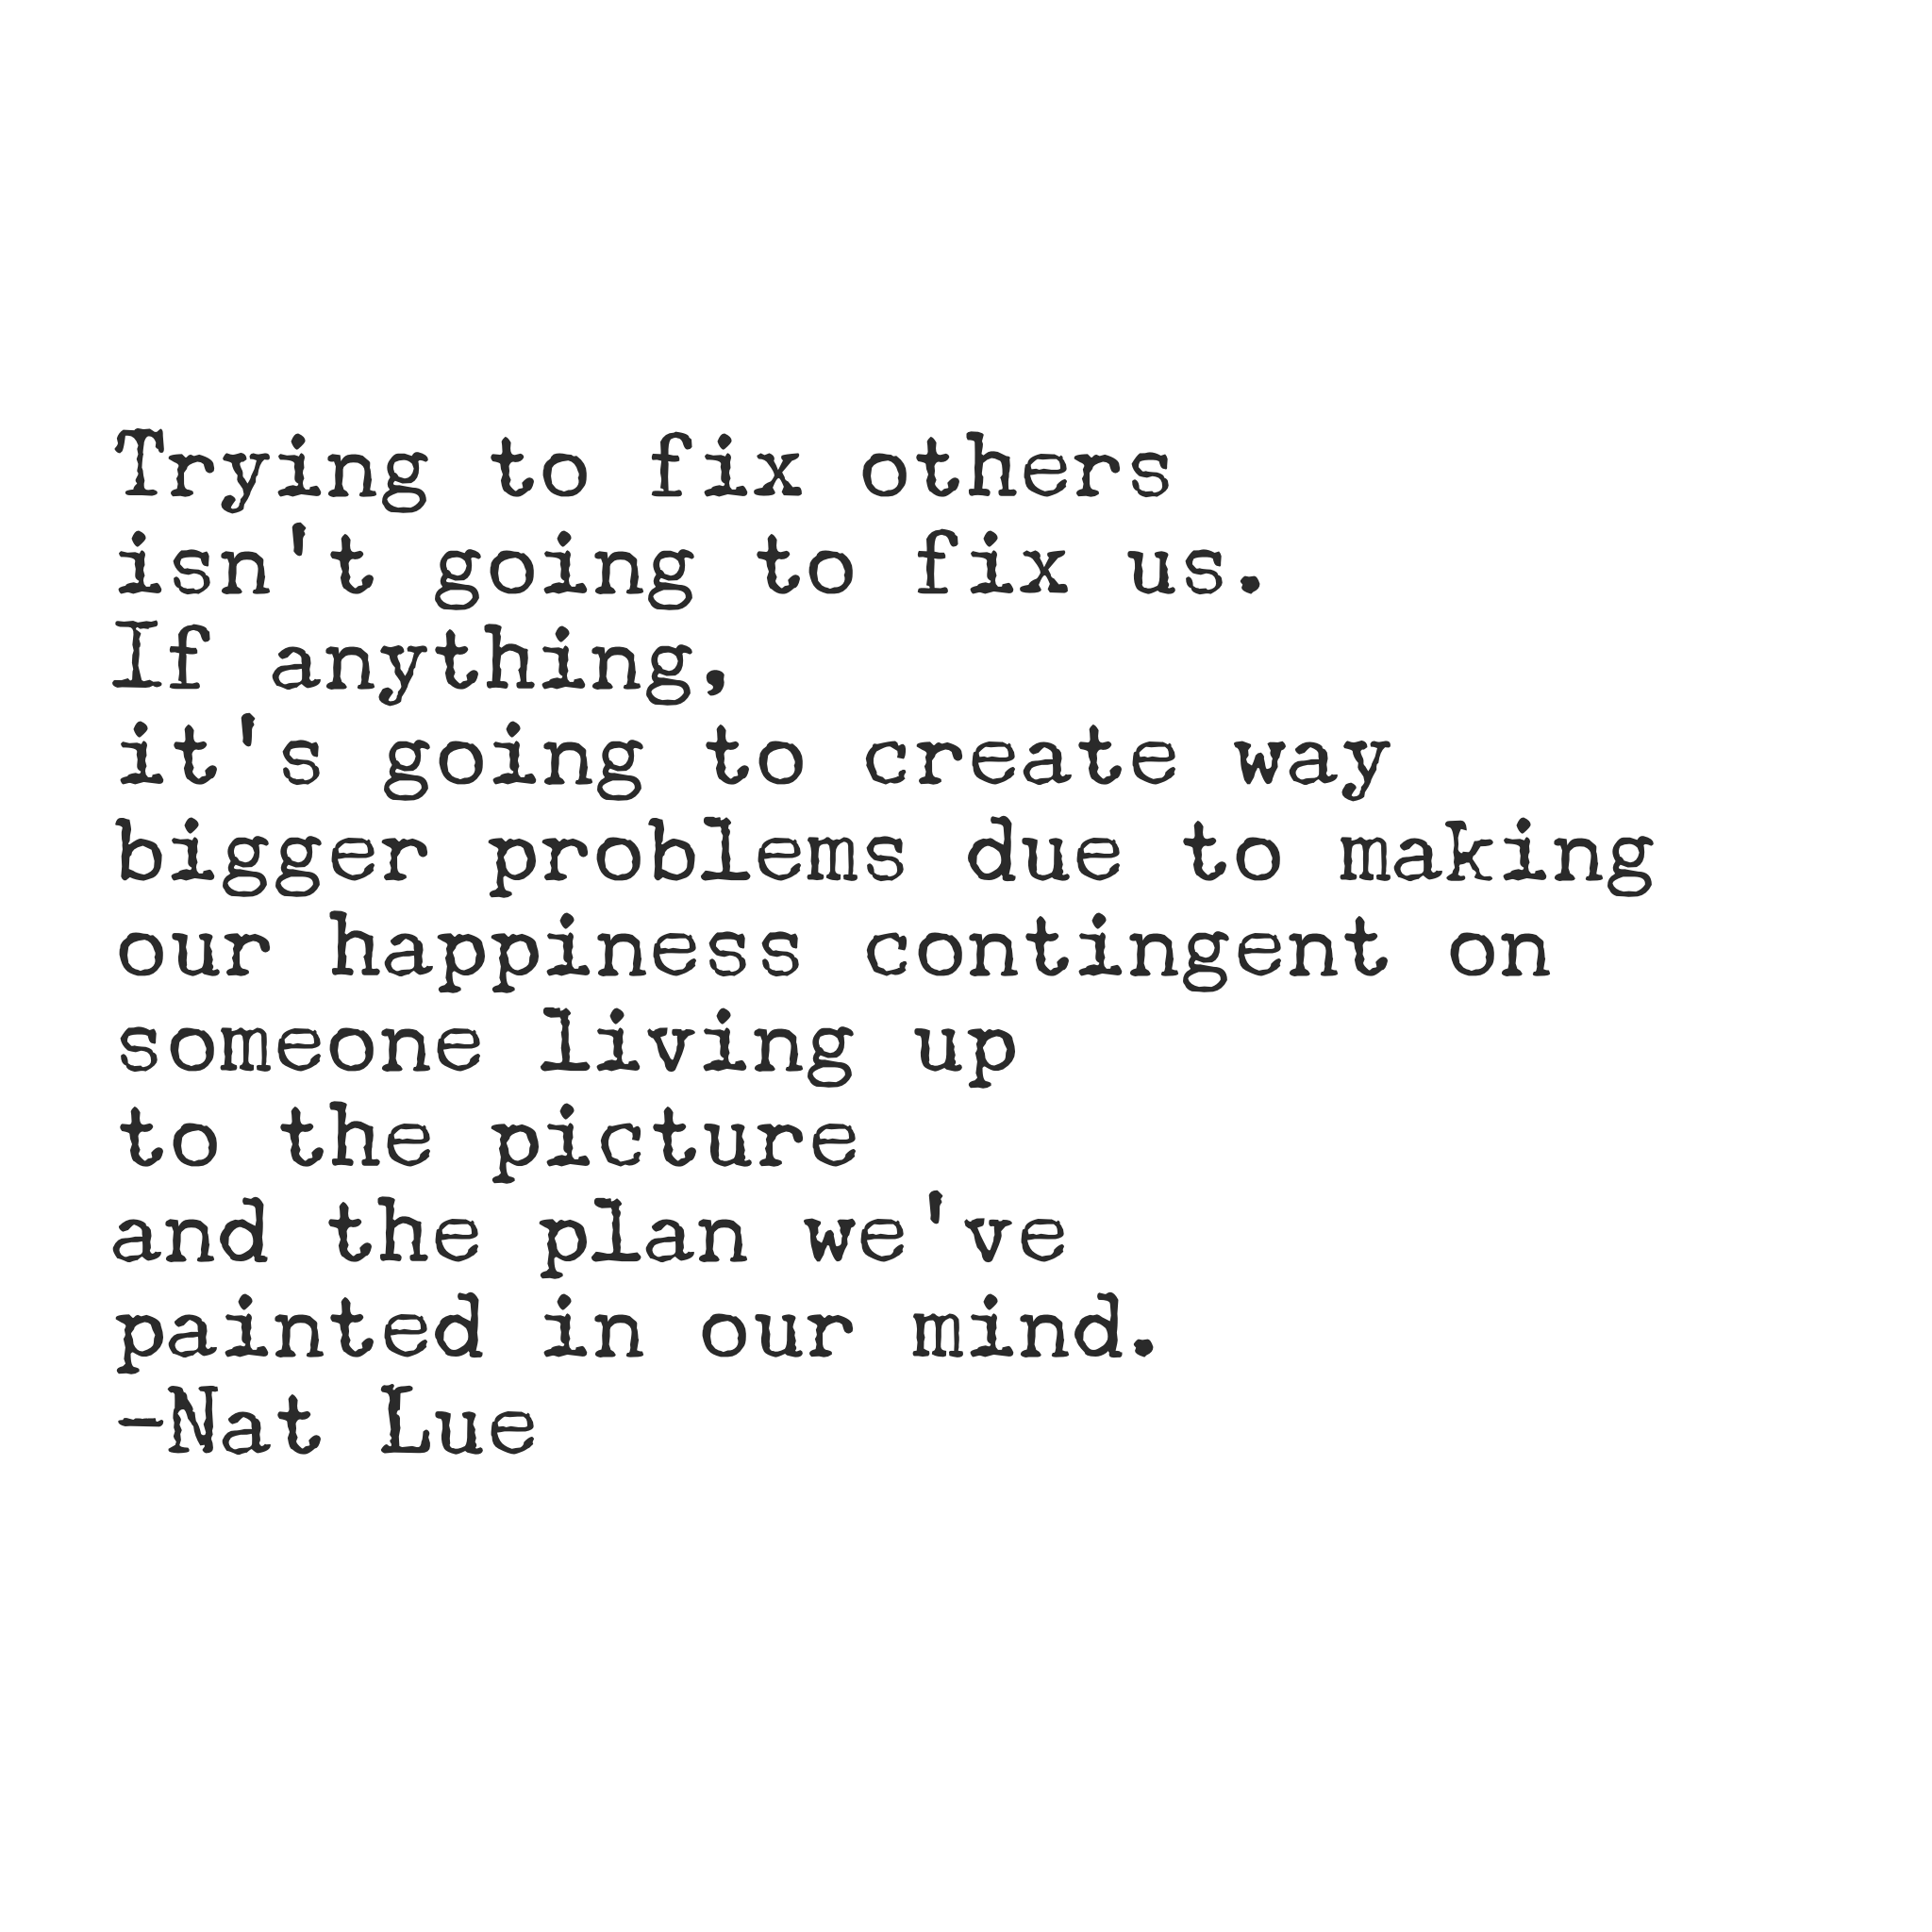 Trying to fix others isn't going to fix us. If anything, it's going to create way bigger problems due to making our happiness contingent on someone living up to the picture and the plan we've painted in our mind.